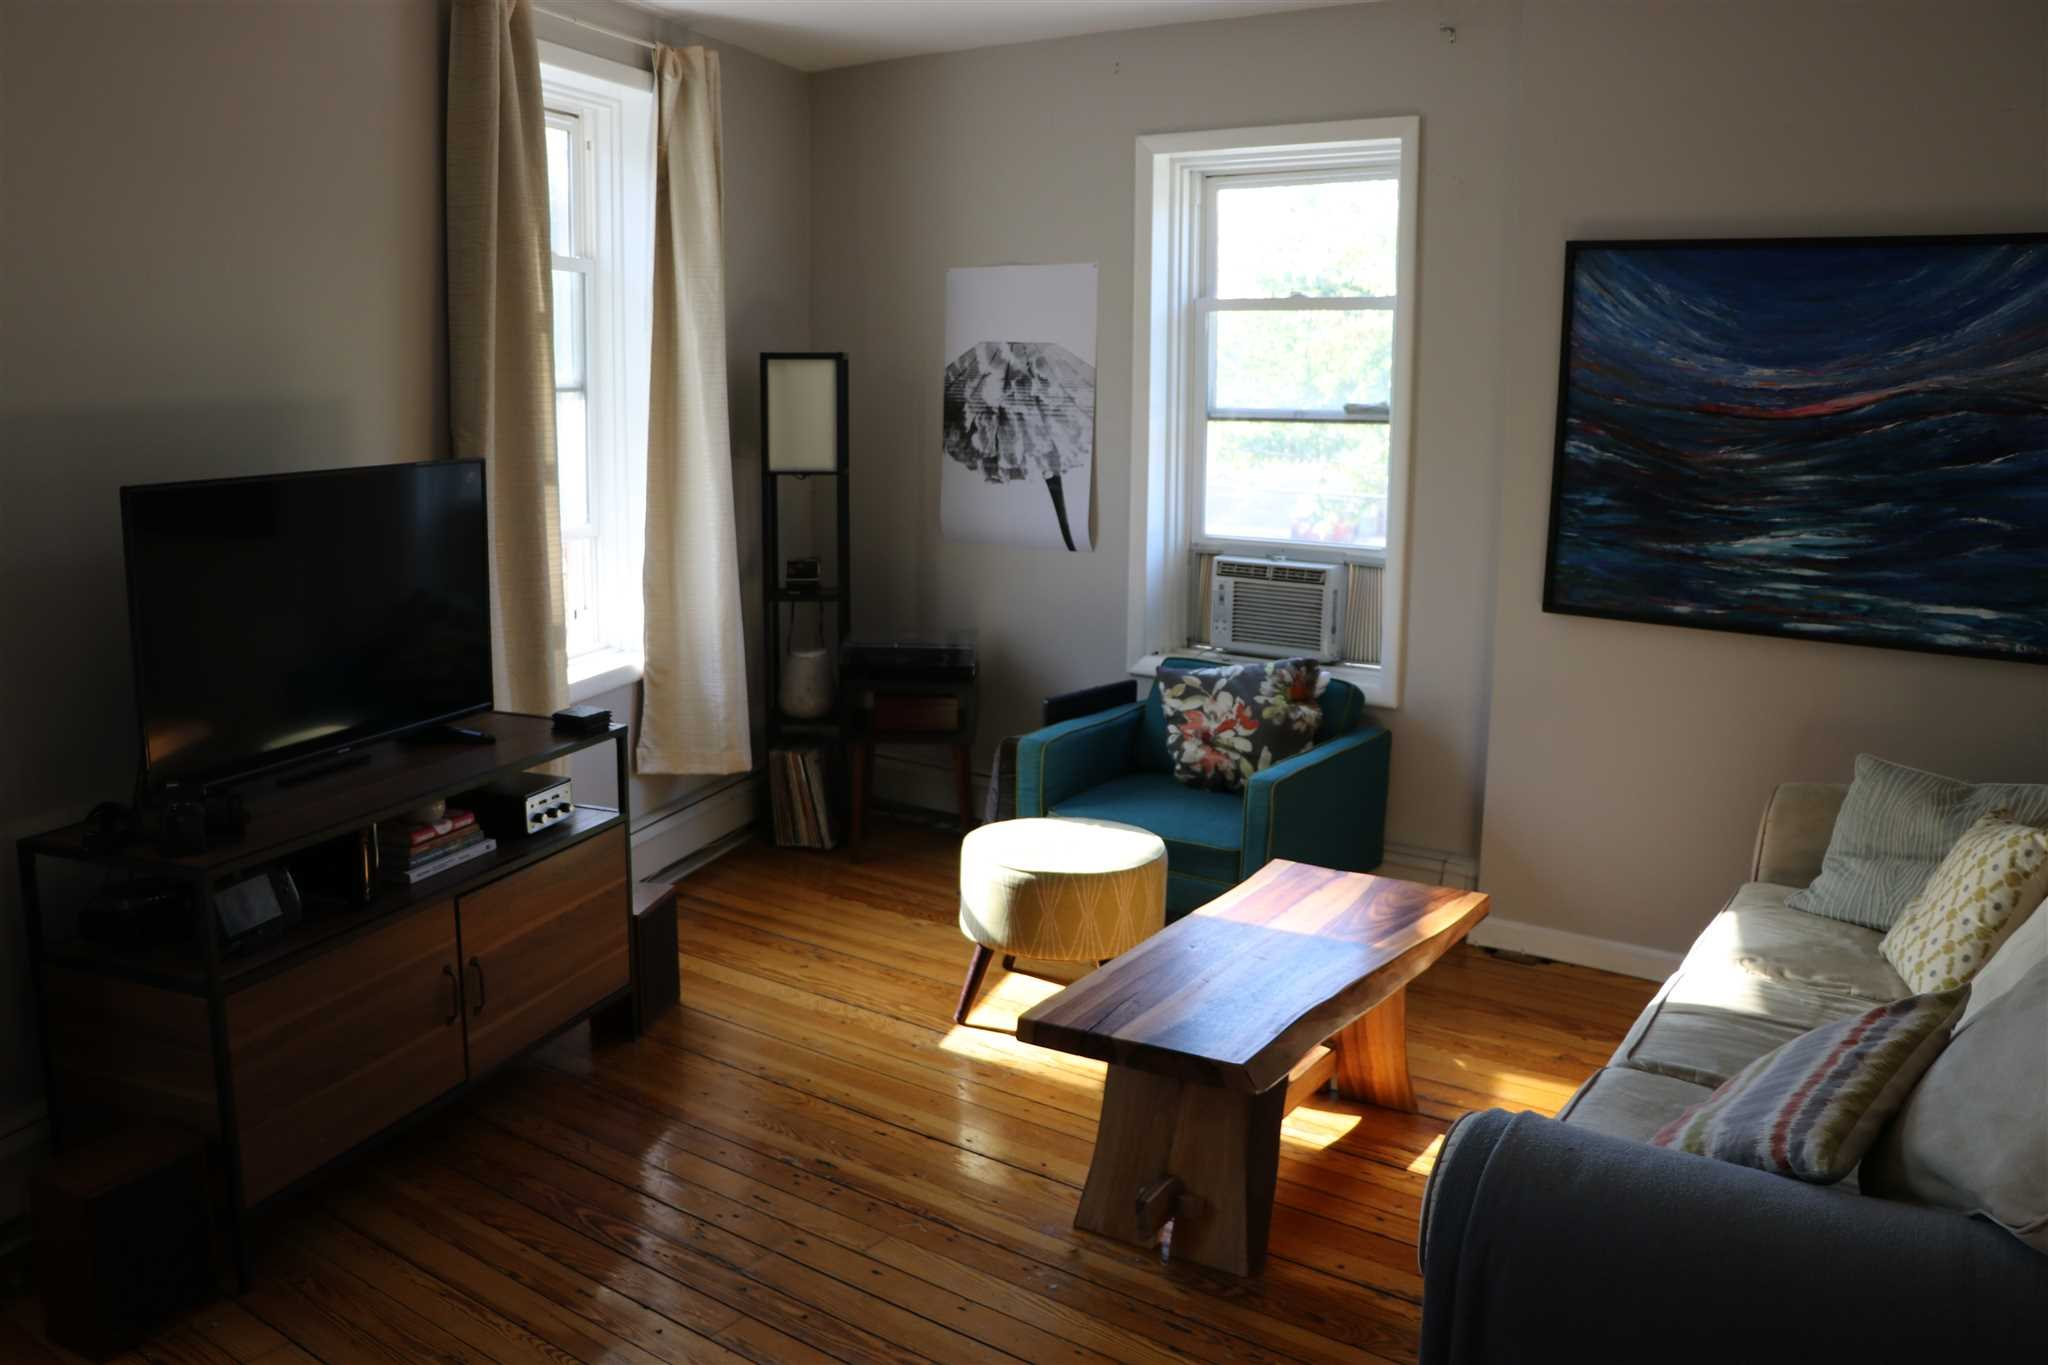 Additional photo for property listing at 554 MAIN STREET 554 MAIN STREET Beacon, New York 12508 United States